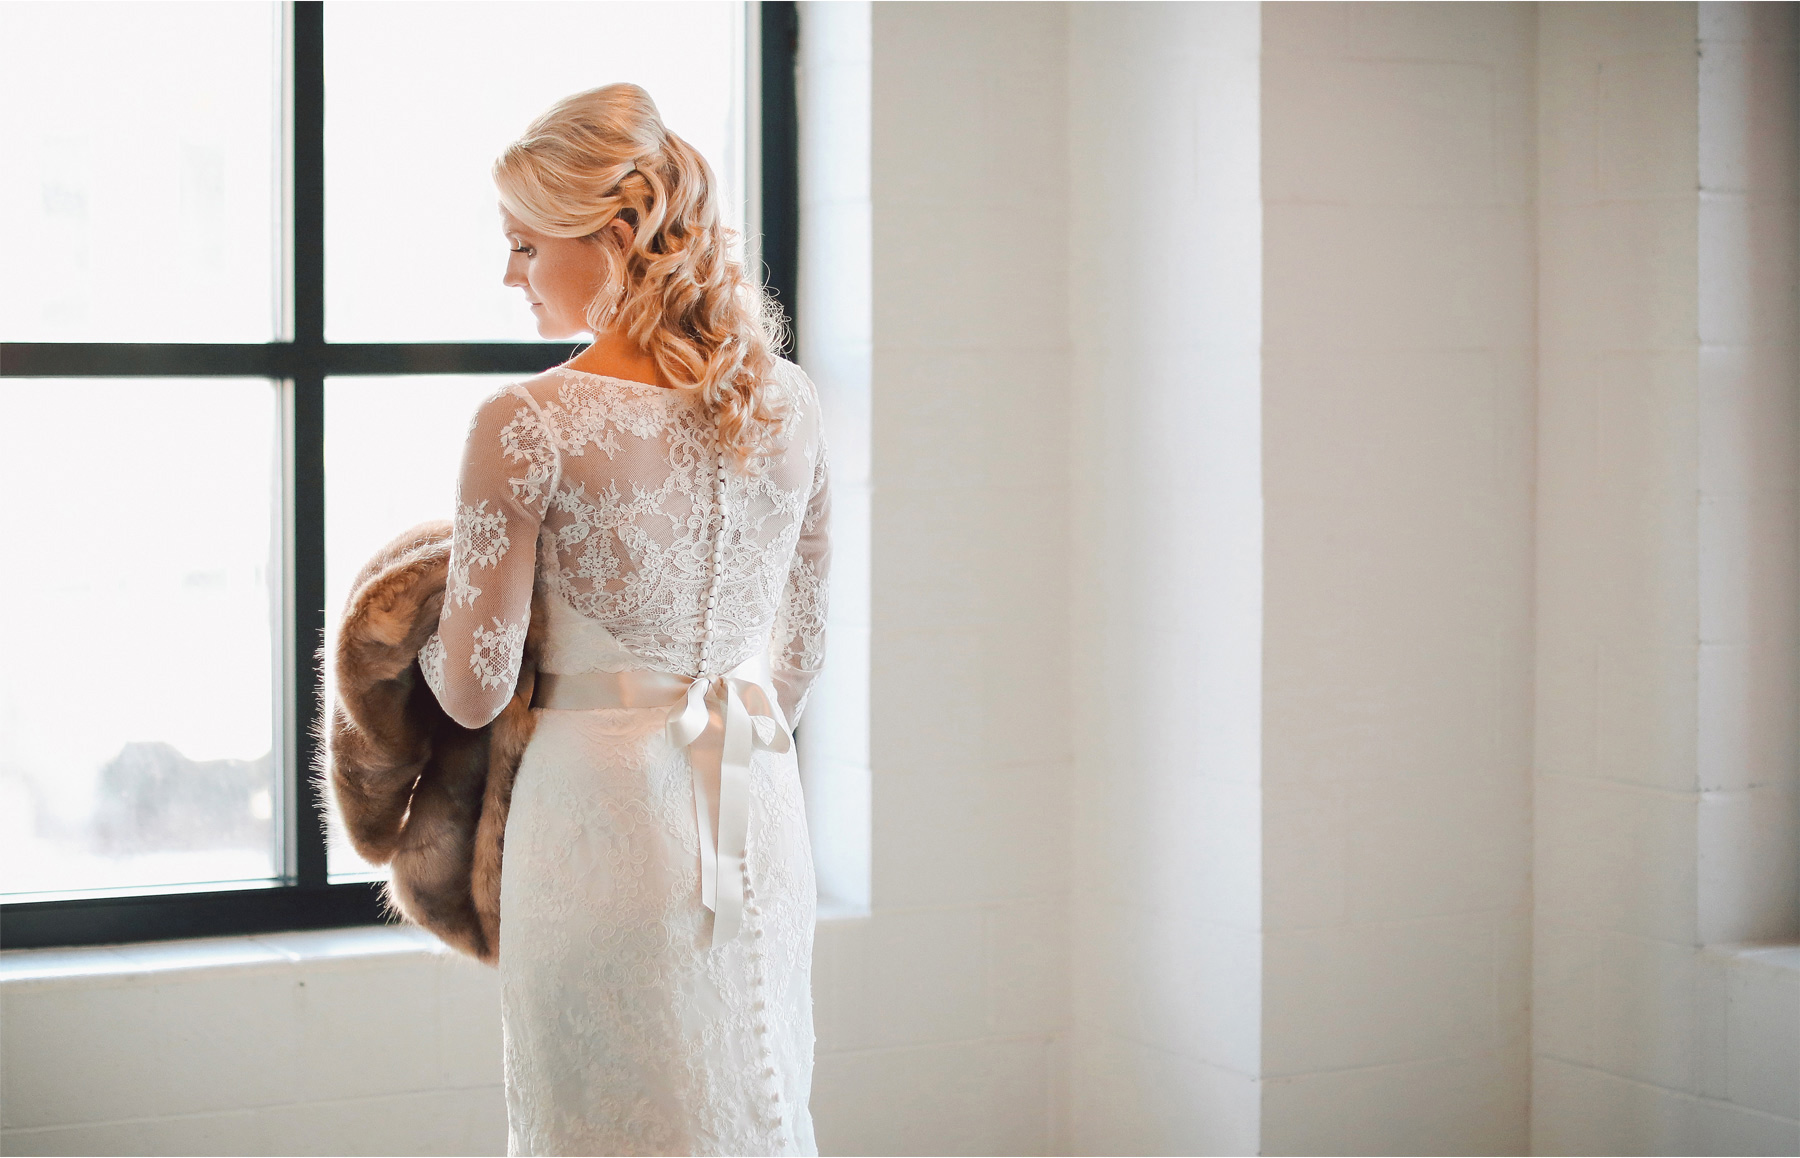 03-Minneapolis-Minnesota-Wedding-Photographer-by-Andrew-Vick-Photography-Winter-Graduate-Commons-Hotel-Getting-Ready-Bride-Fur-Shrug-Dress-Vintage-Brittany-and-Joseph.jpg